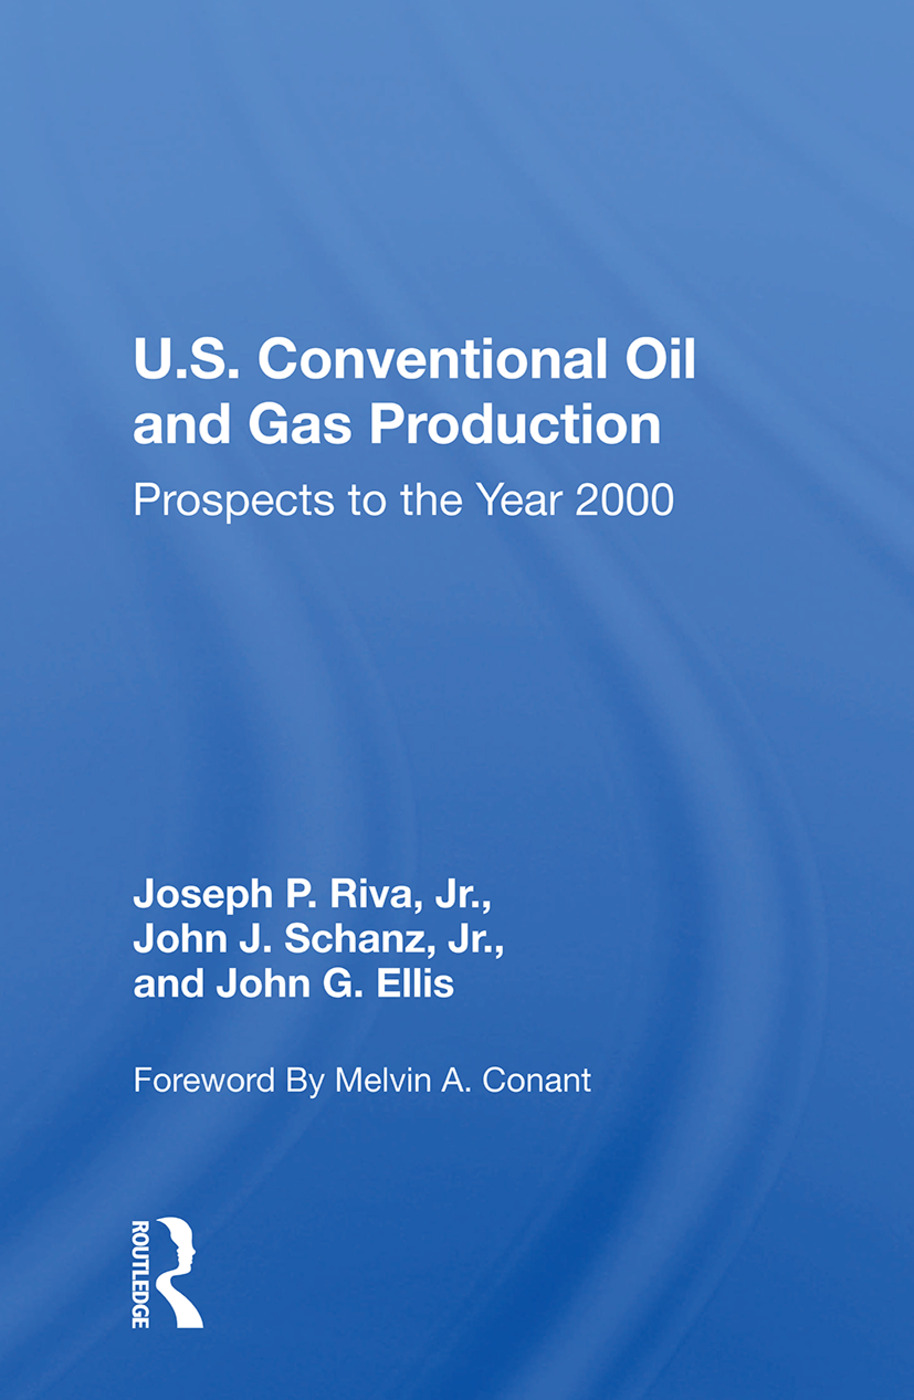 U.S. Conventional Oil And Gas Production: Prospects To The Year 2000 book cover